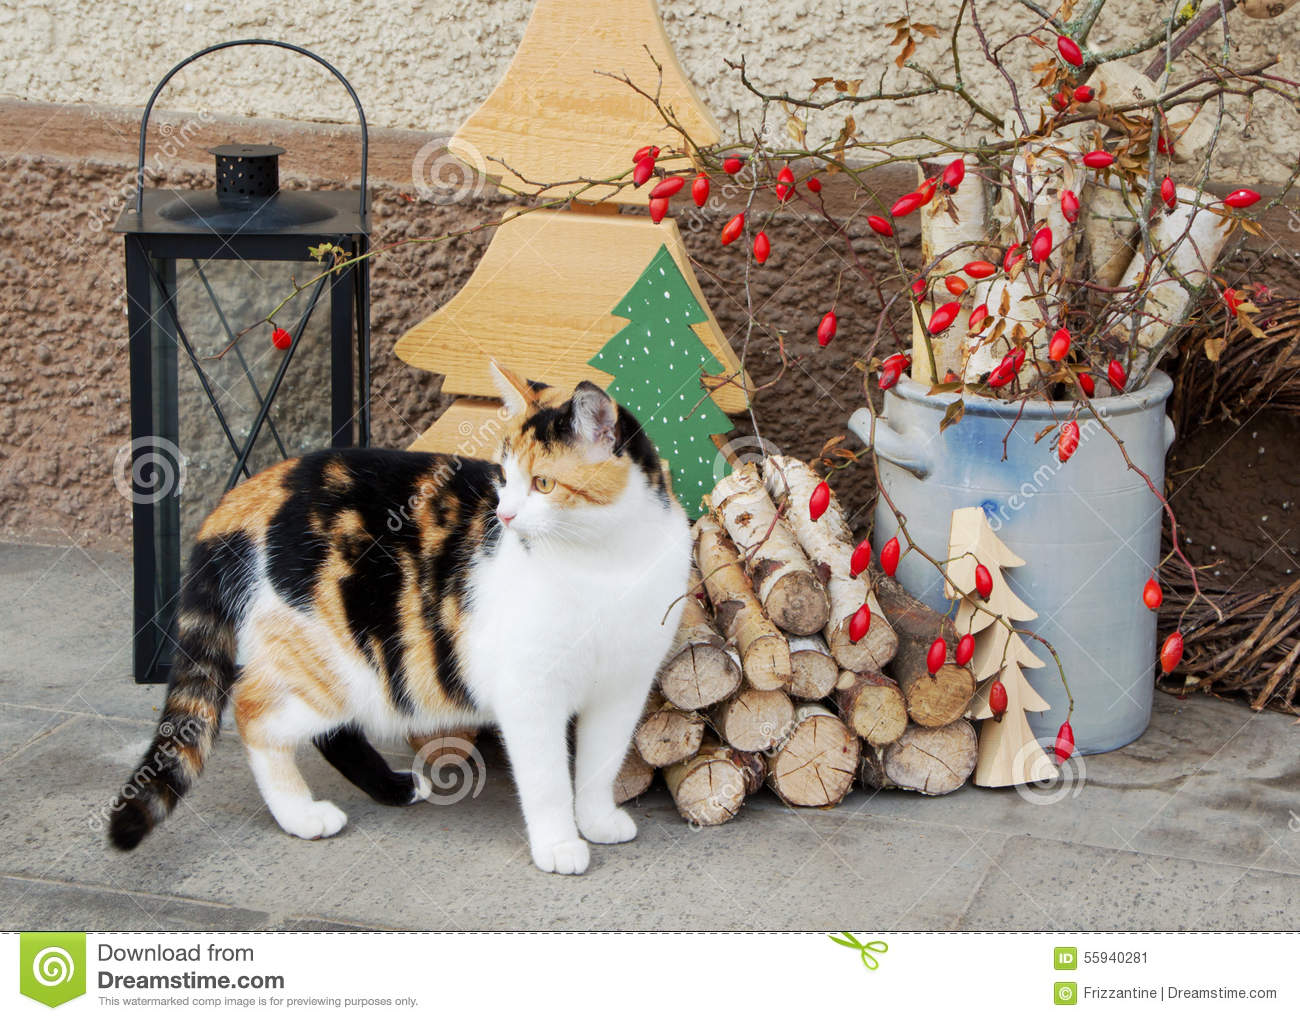 Christmas cat outdoor decorations for Christmas cat yard decorations